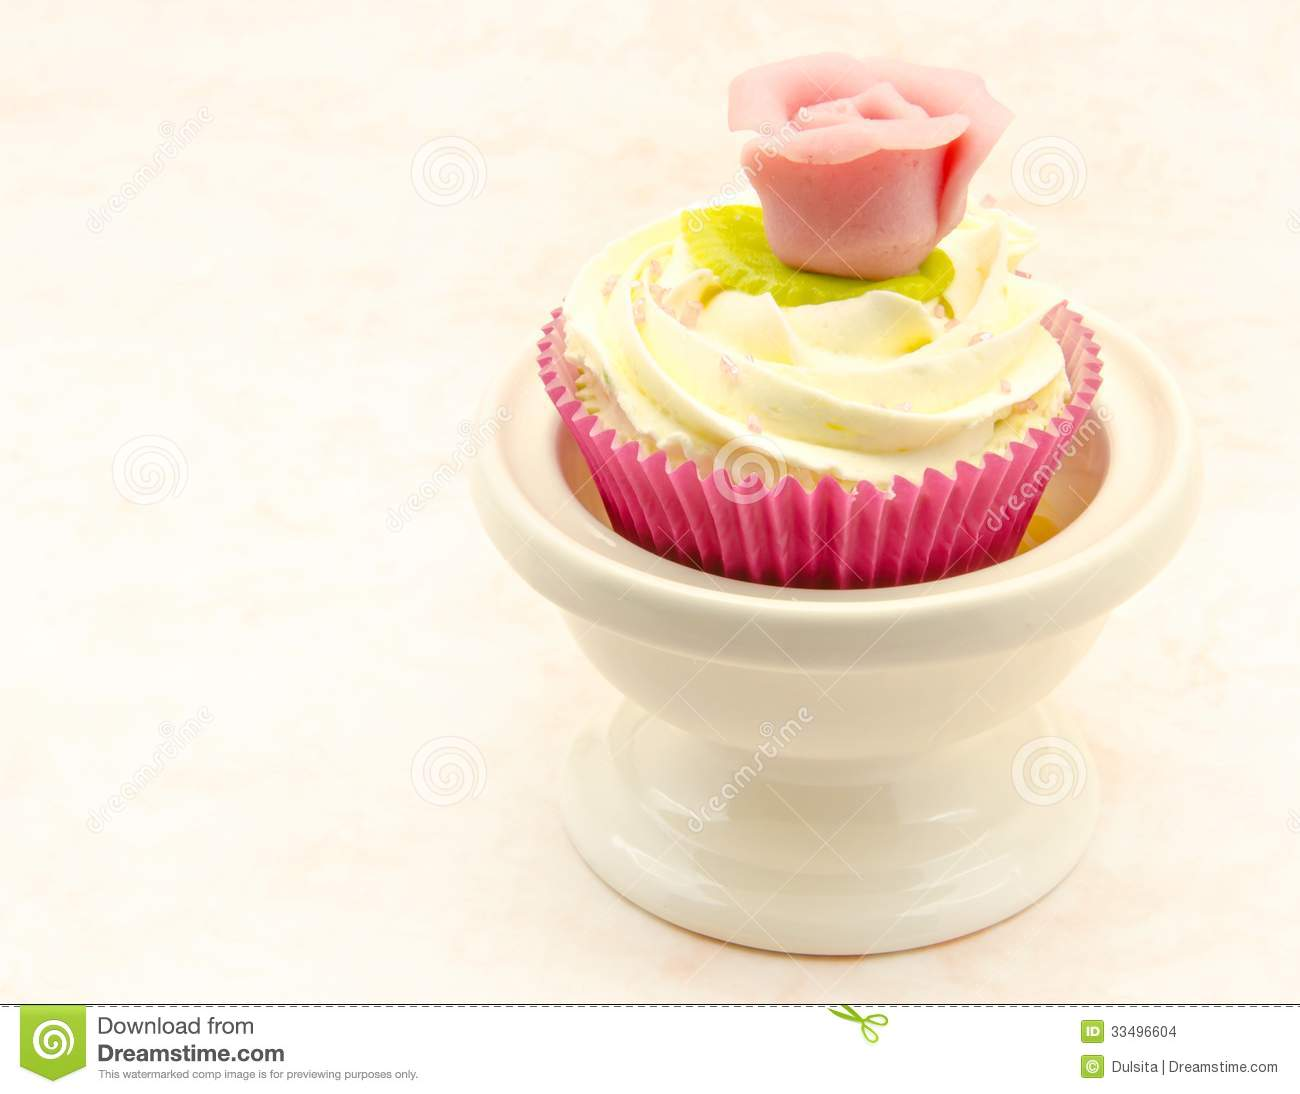 Cupcake with White Backround